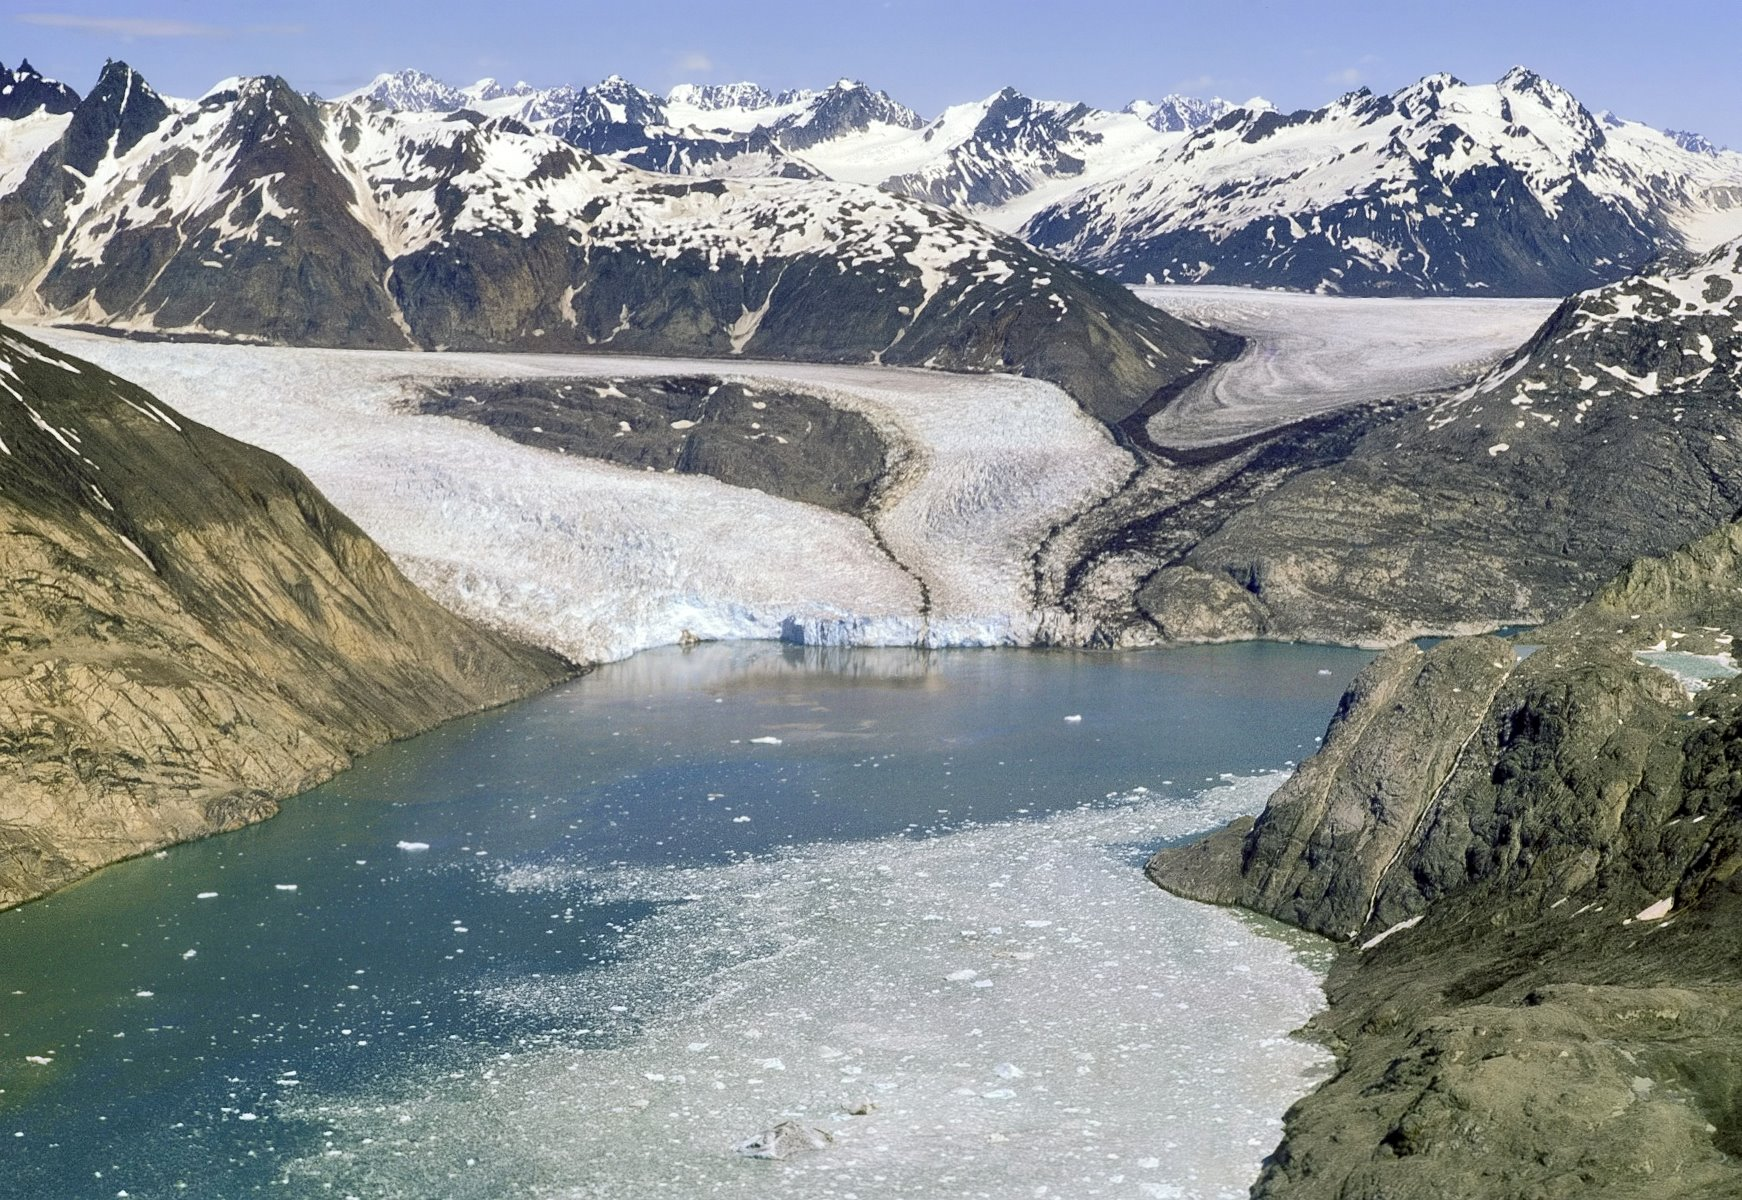 Riggs Glacier's tidewater front separated from Muir's in 1961 and was still calving into the sea in 1967.